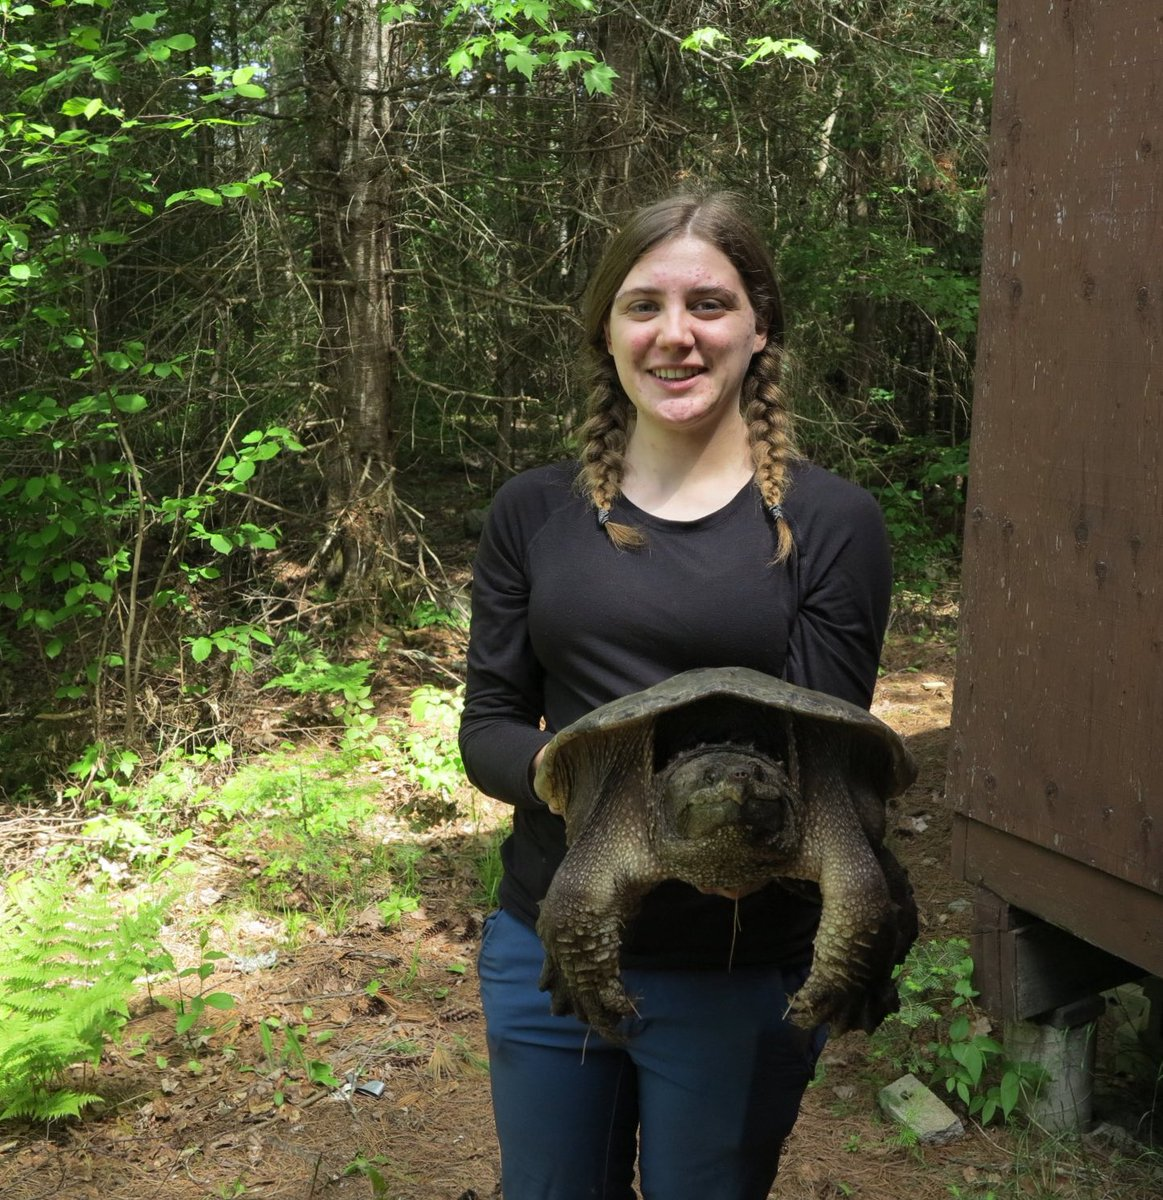 @CheloniaGirl @HerpLeague @ssarherps @IchsAndHerps I'm studying how climate change is impacting aspects of snapping and painted turtle life history - focusing on offspring sex ratio and development right now 🐢🐢 https://t.co/TyDsD1QI8I